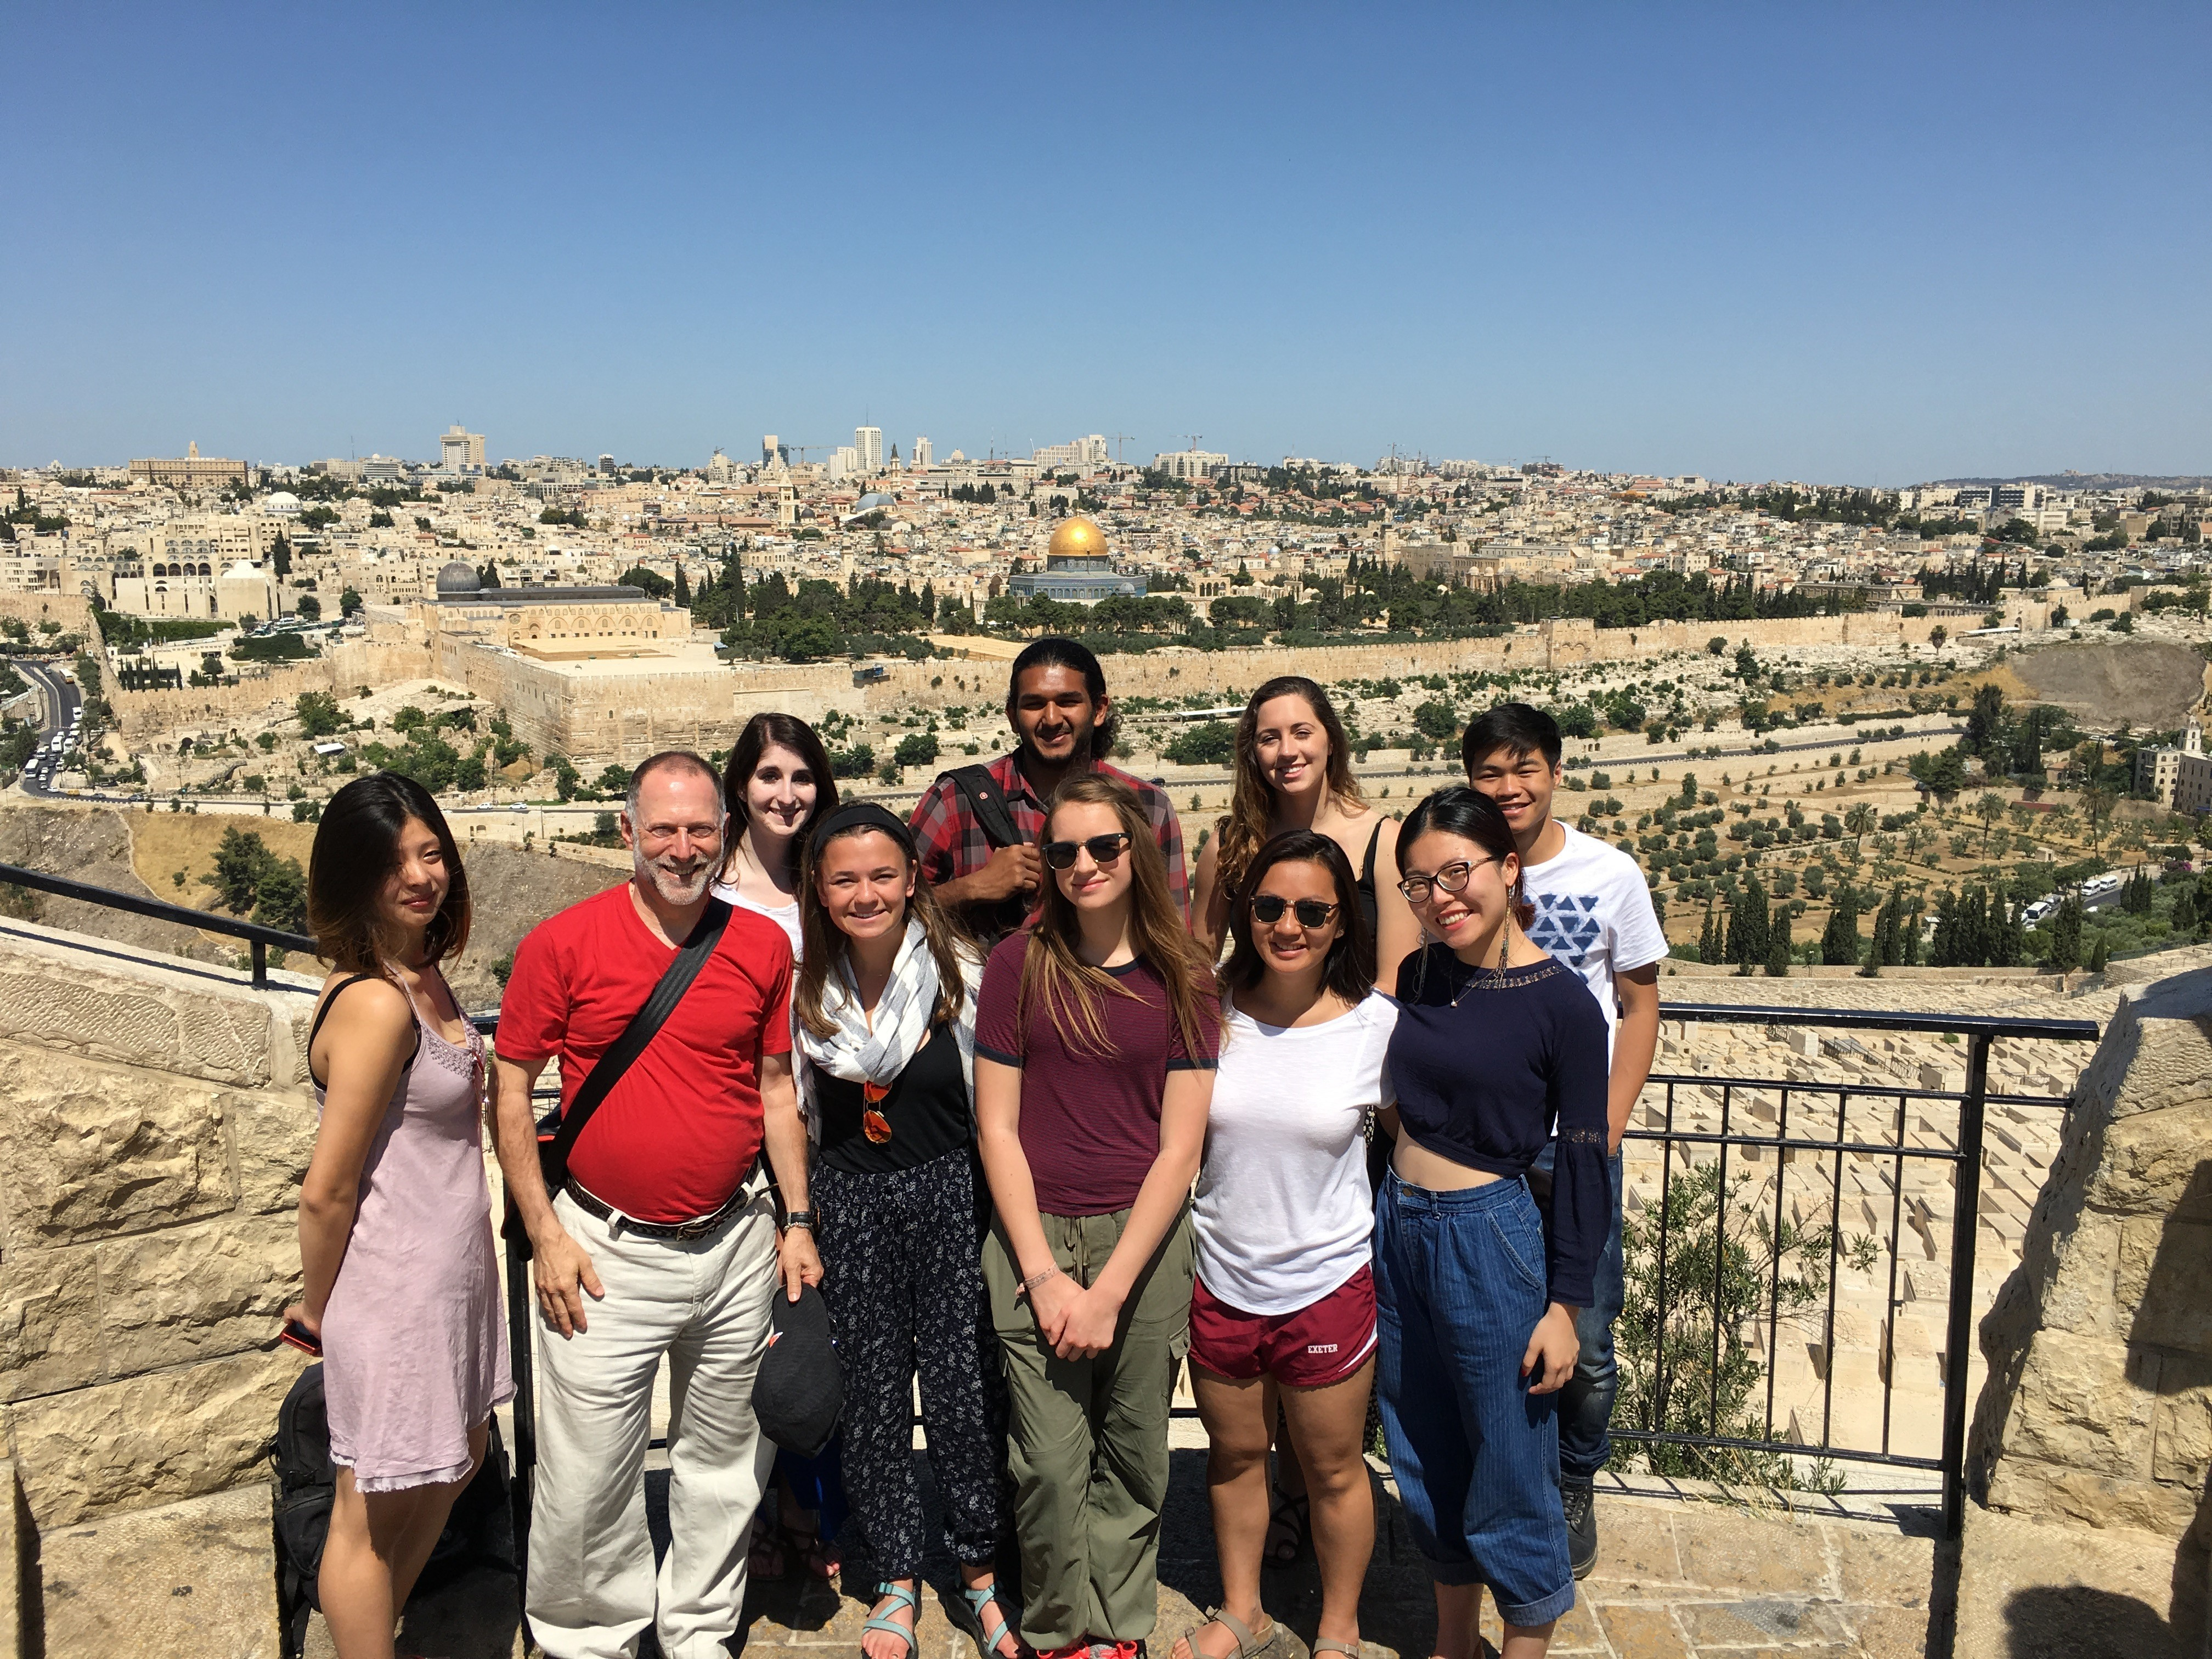 Students visit Jerusalem Temple Mount/Haram al-Sharif during a summer course examining the conflict between Israel and Palestine. Photo courtesy of Shalom Staub.